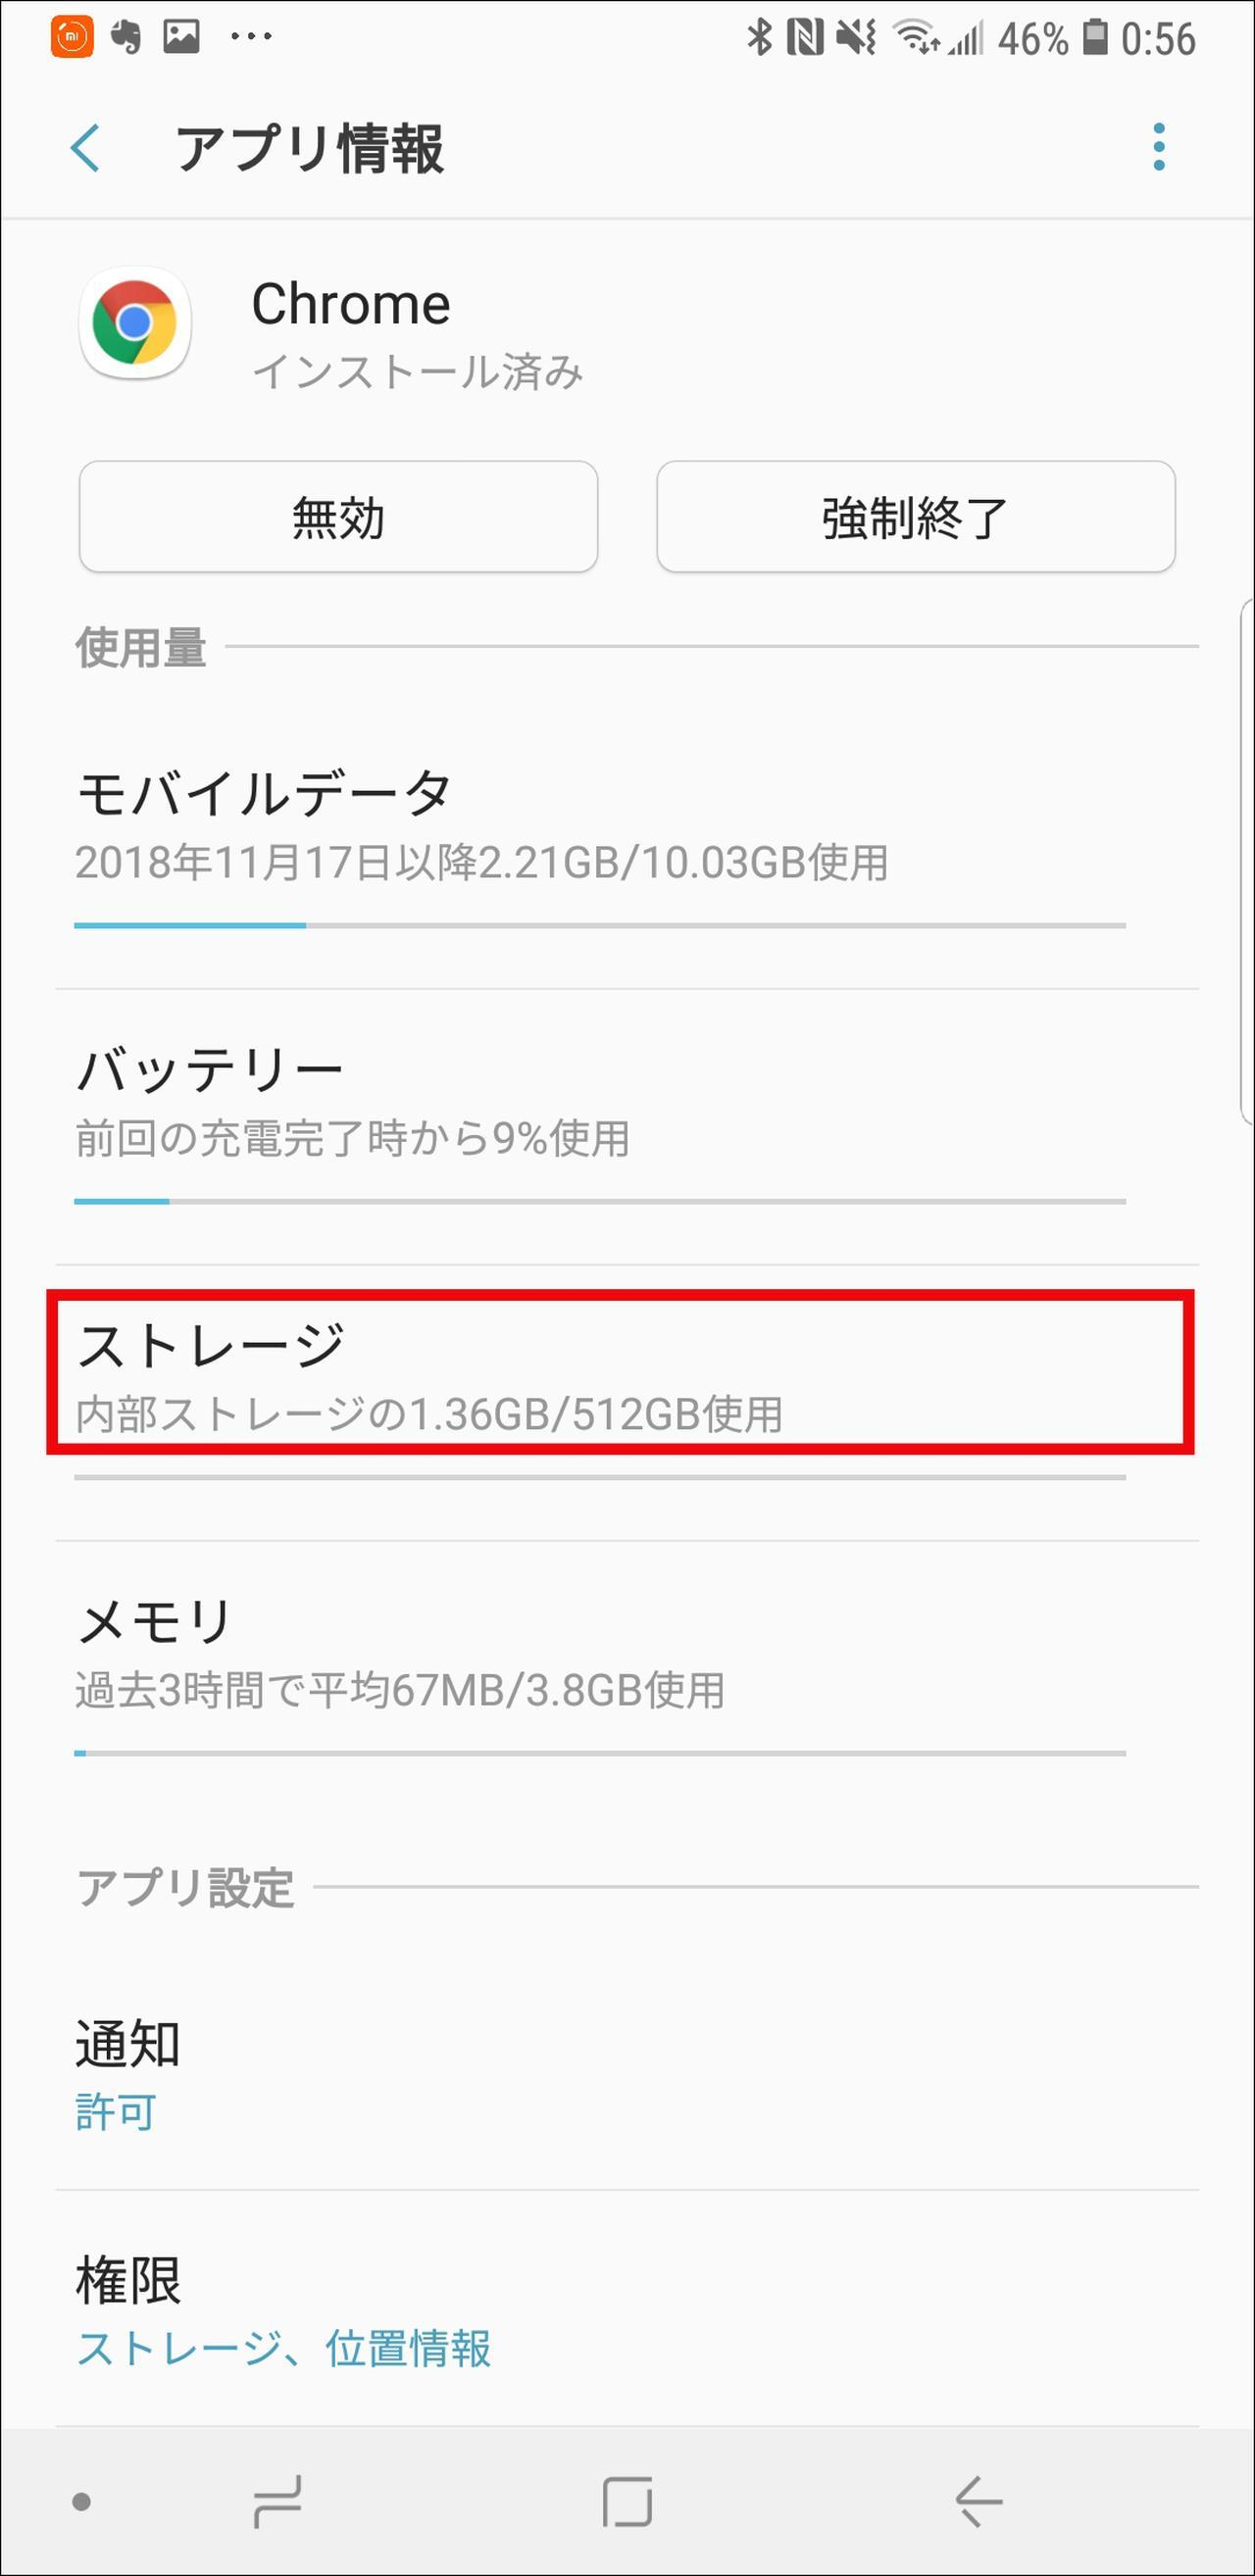 fed449fd74 重い…】Androidの Chrome (クローム) が不安定 スマホのブラウザー ...